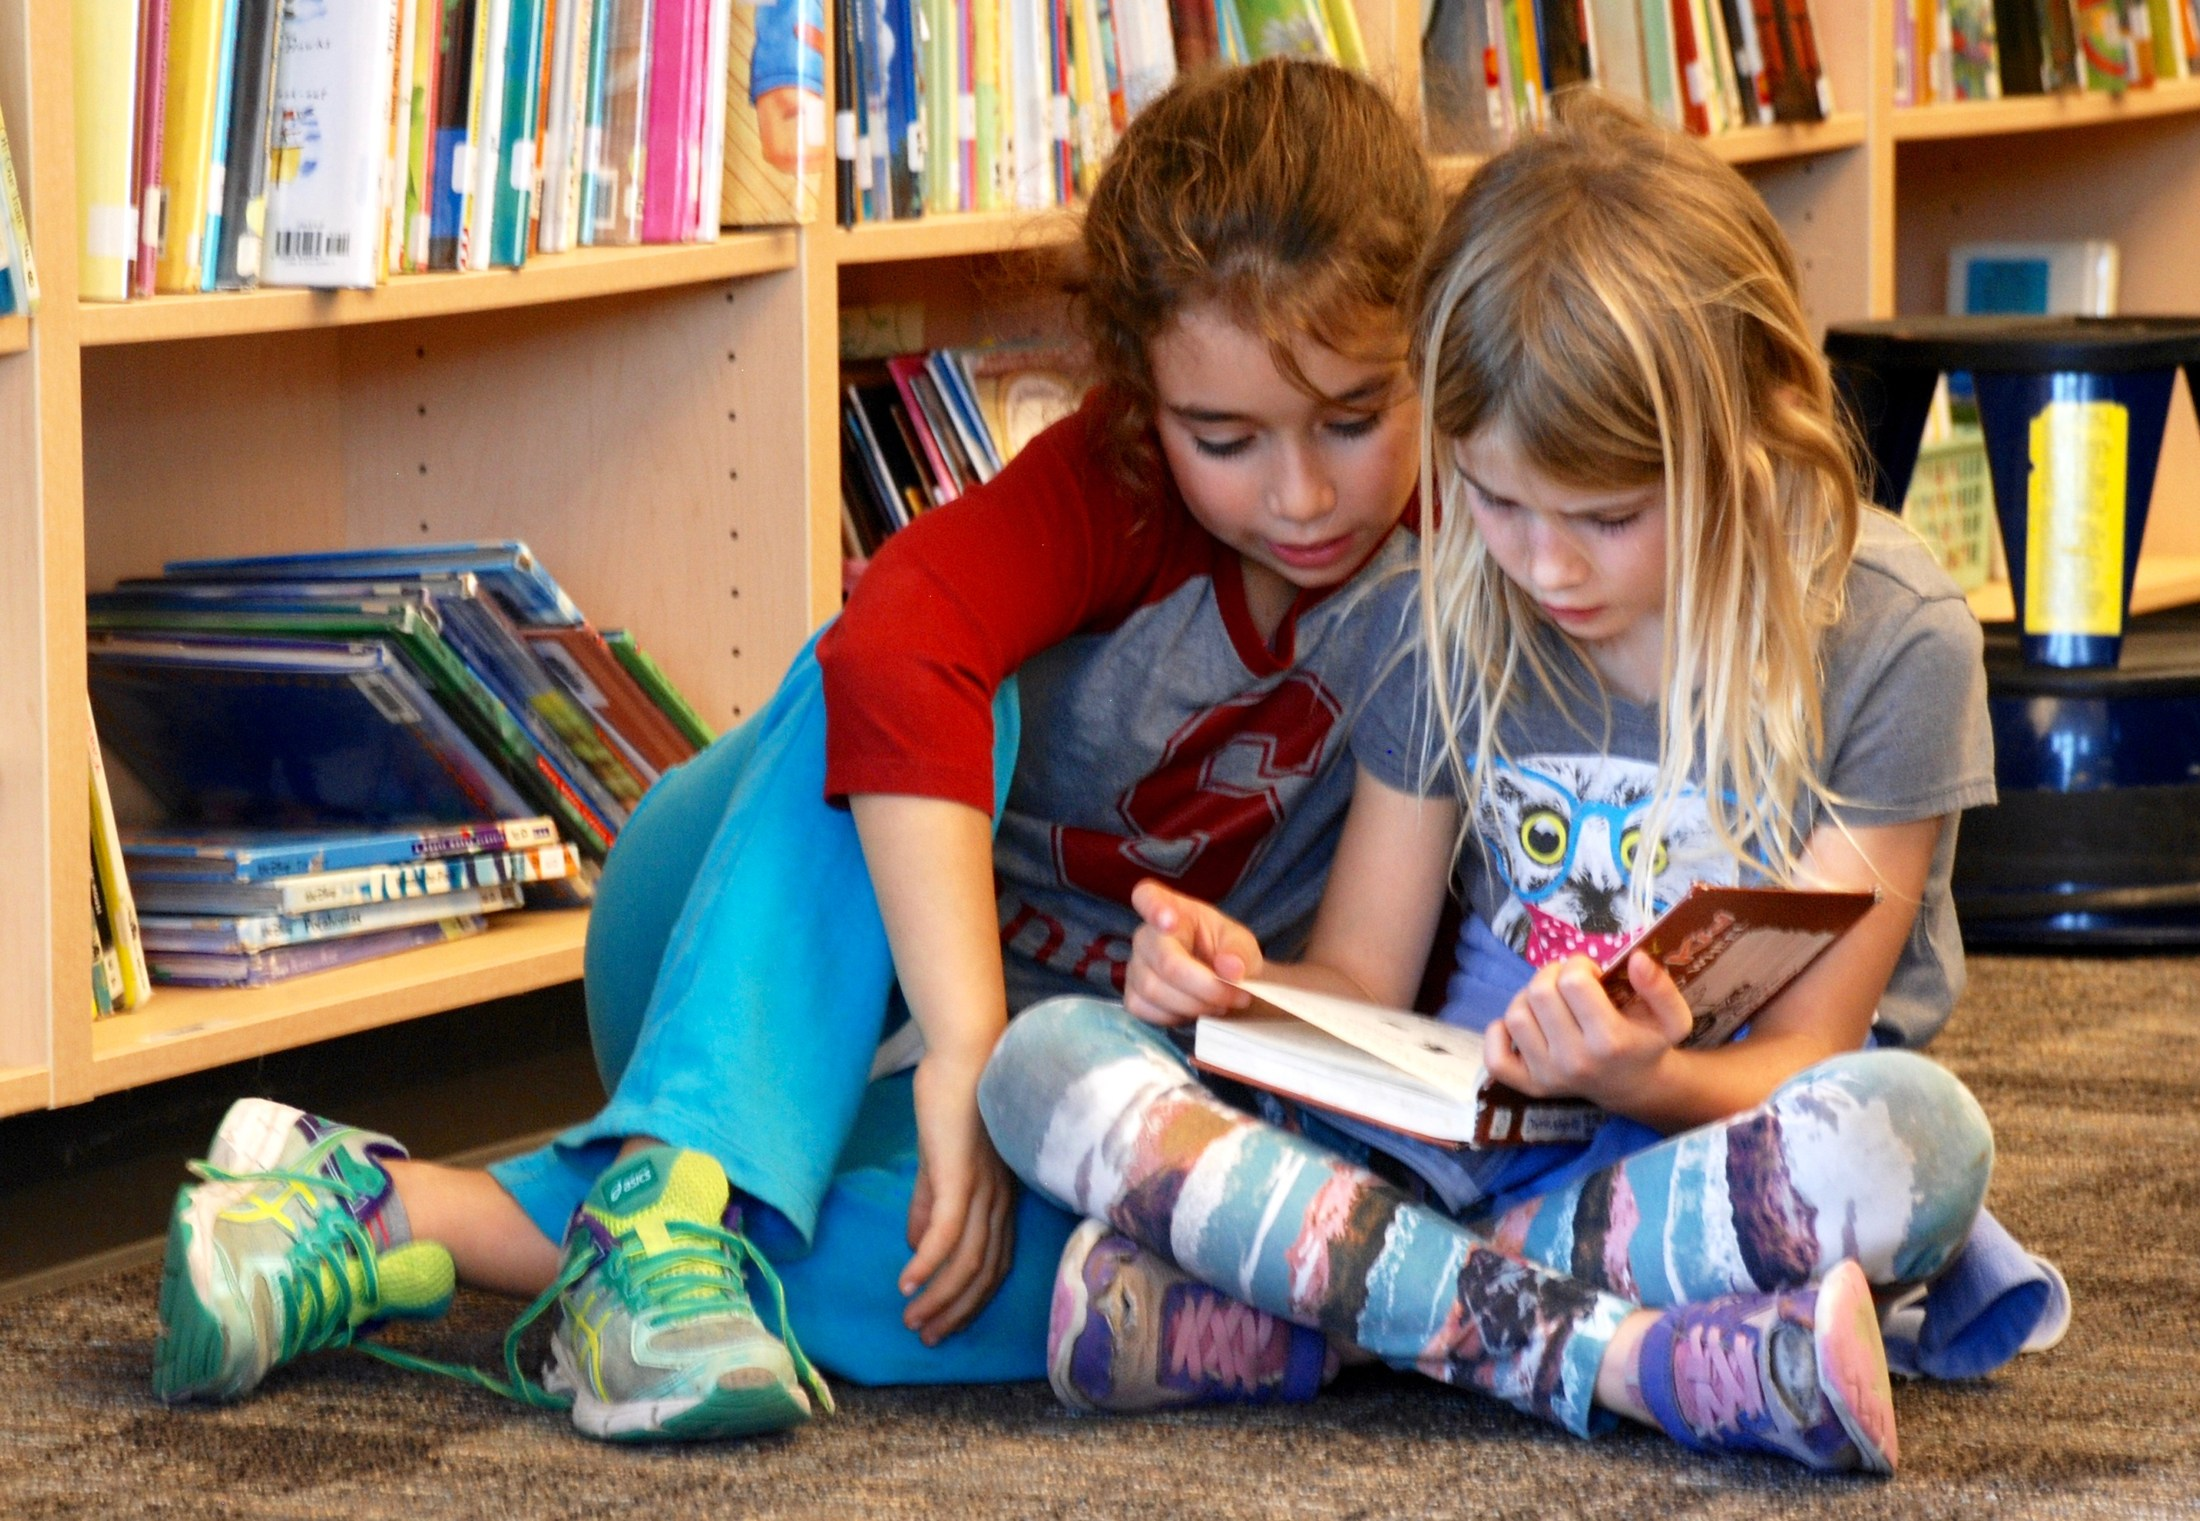 students reading in library shelves